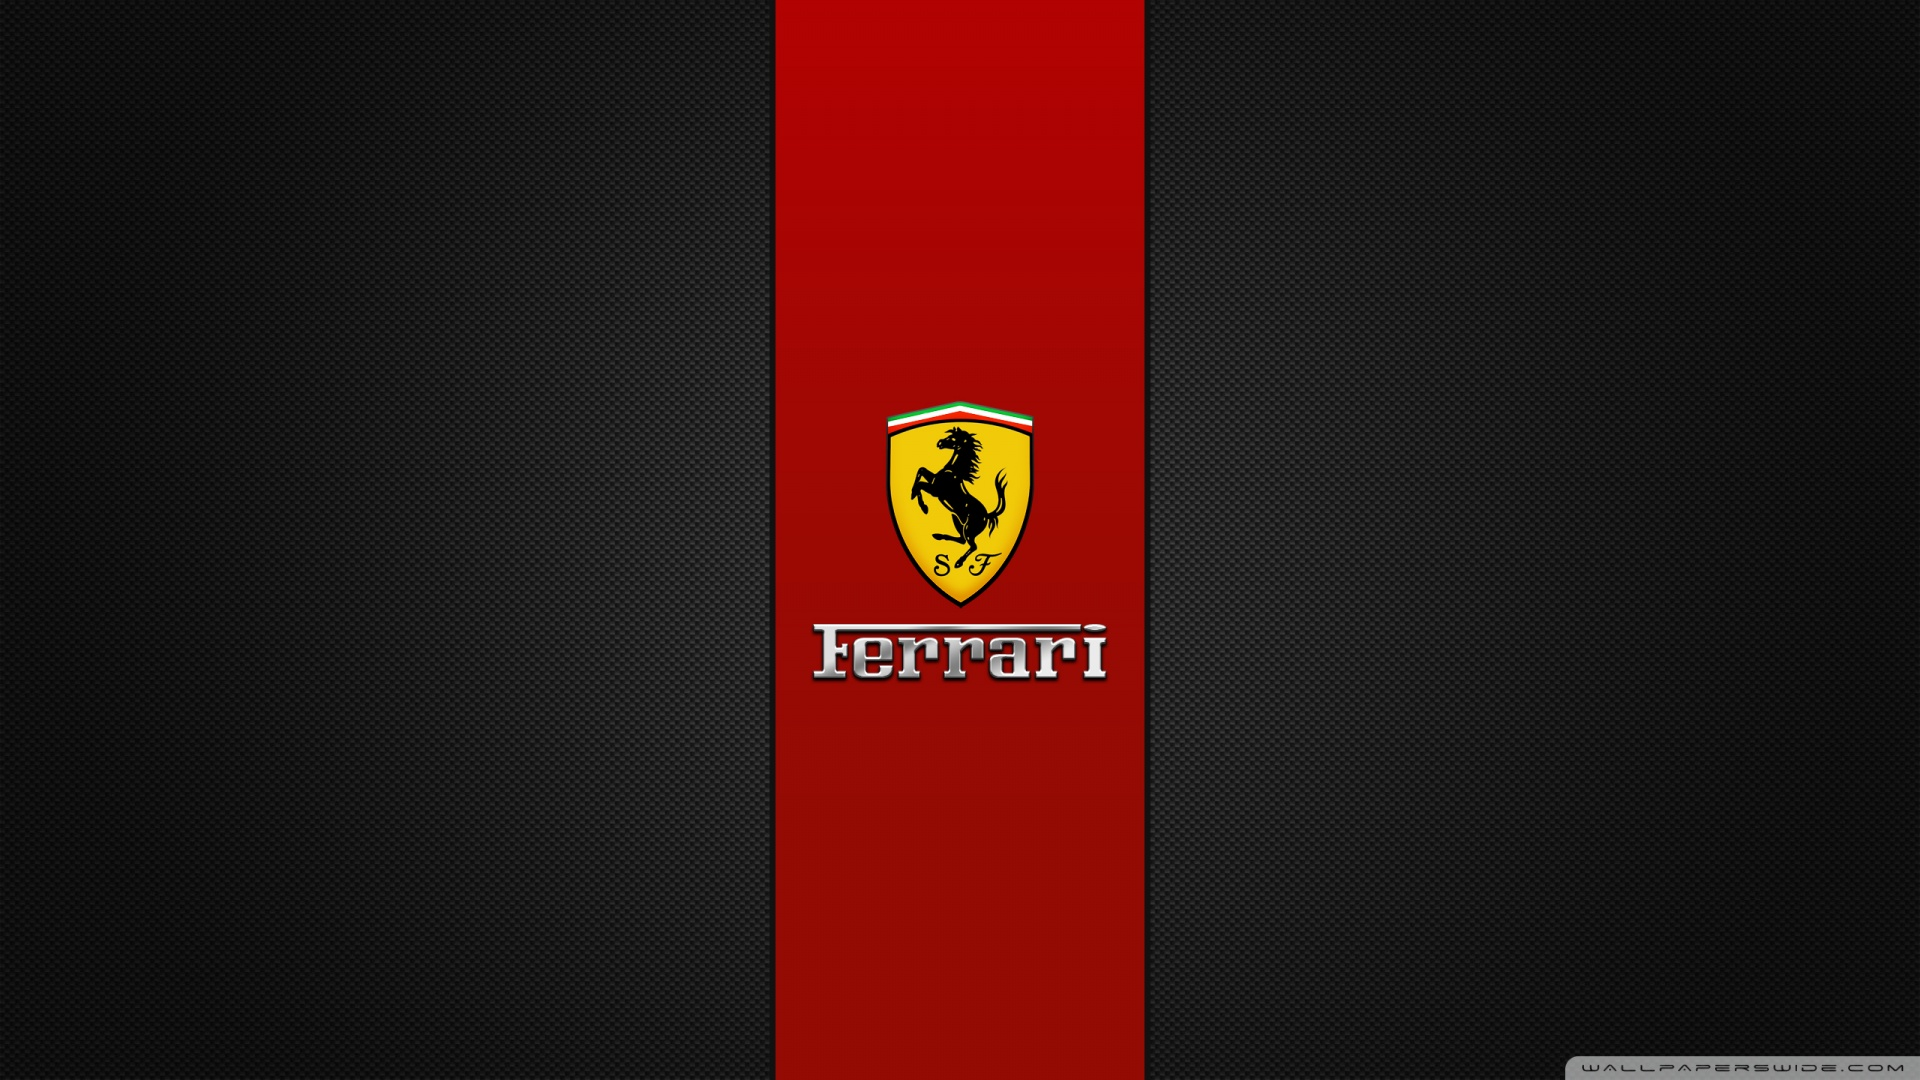 Ferrari Wallpaper 1920x1080 41347